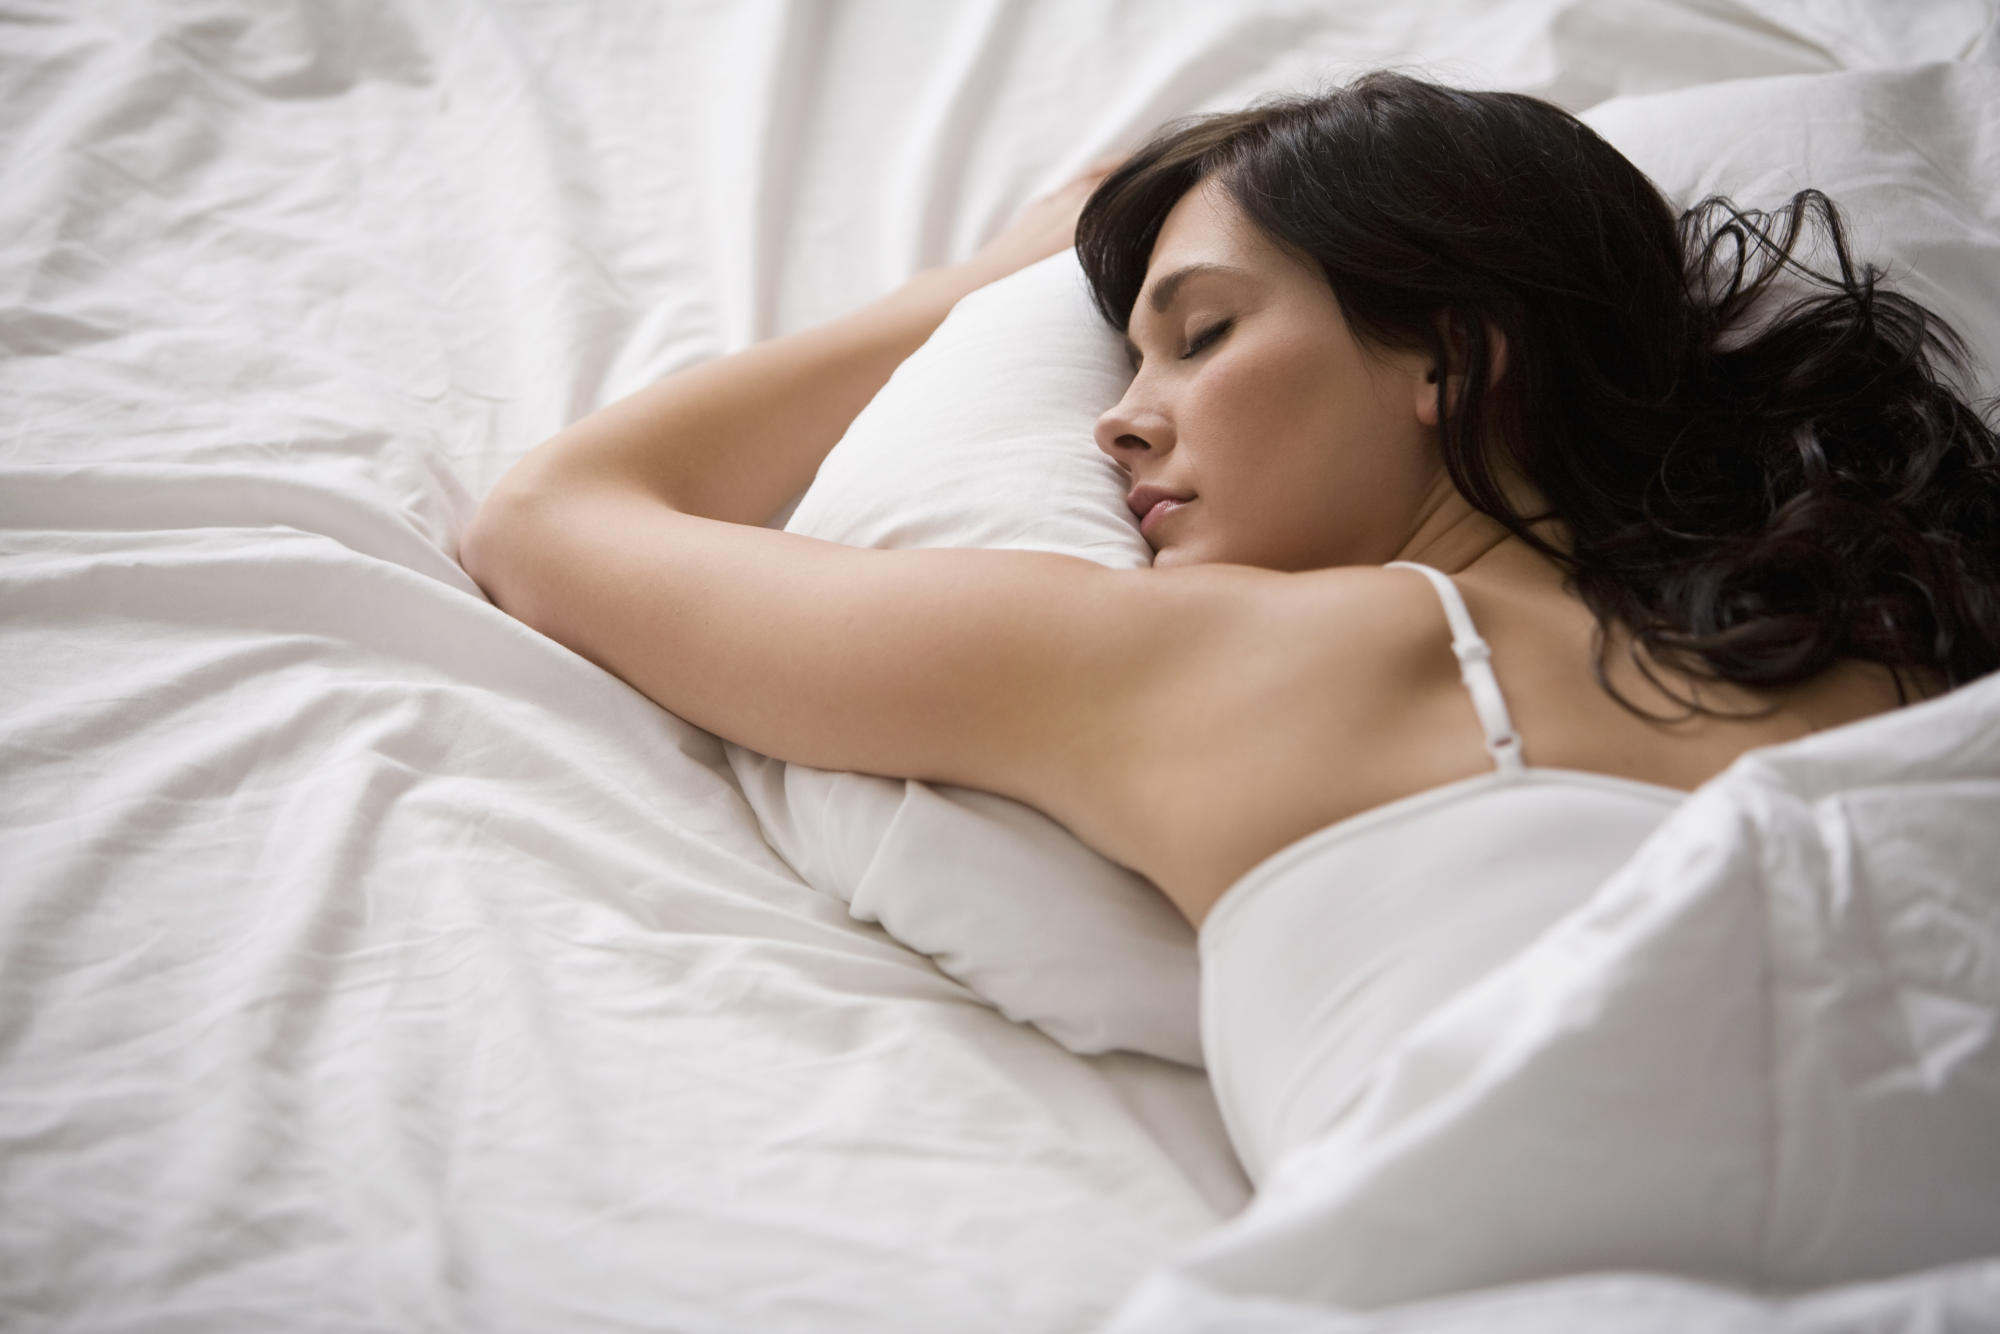 Sleep for just six to seven hours a night to maximise heart health, study suggests